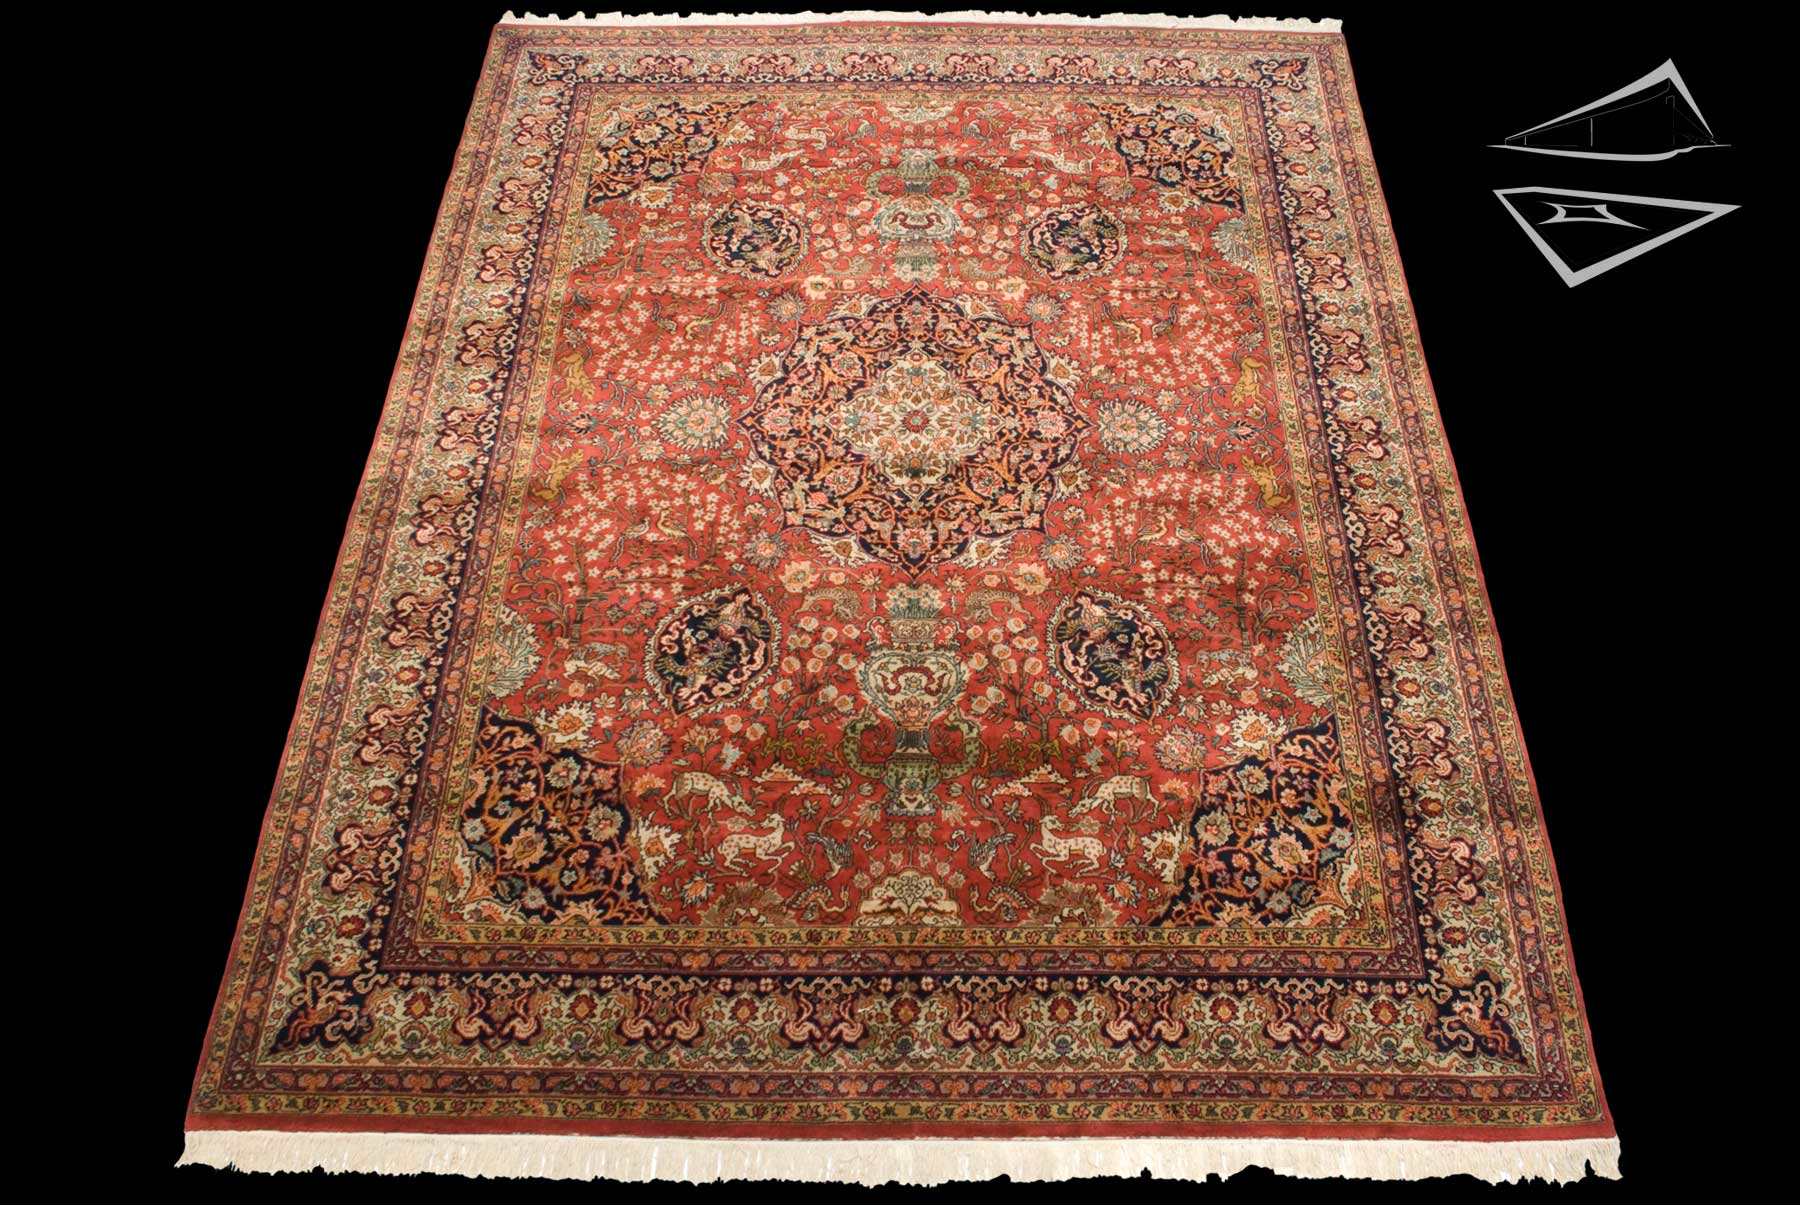 10x13 Romanian Rug Large Rugs Amp Carpets